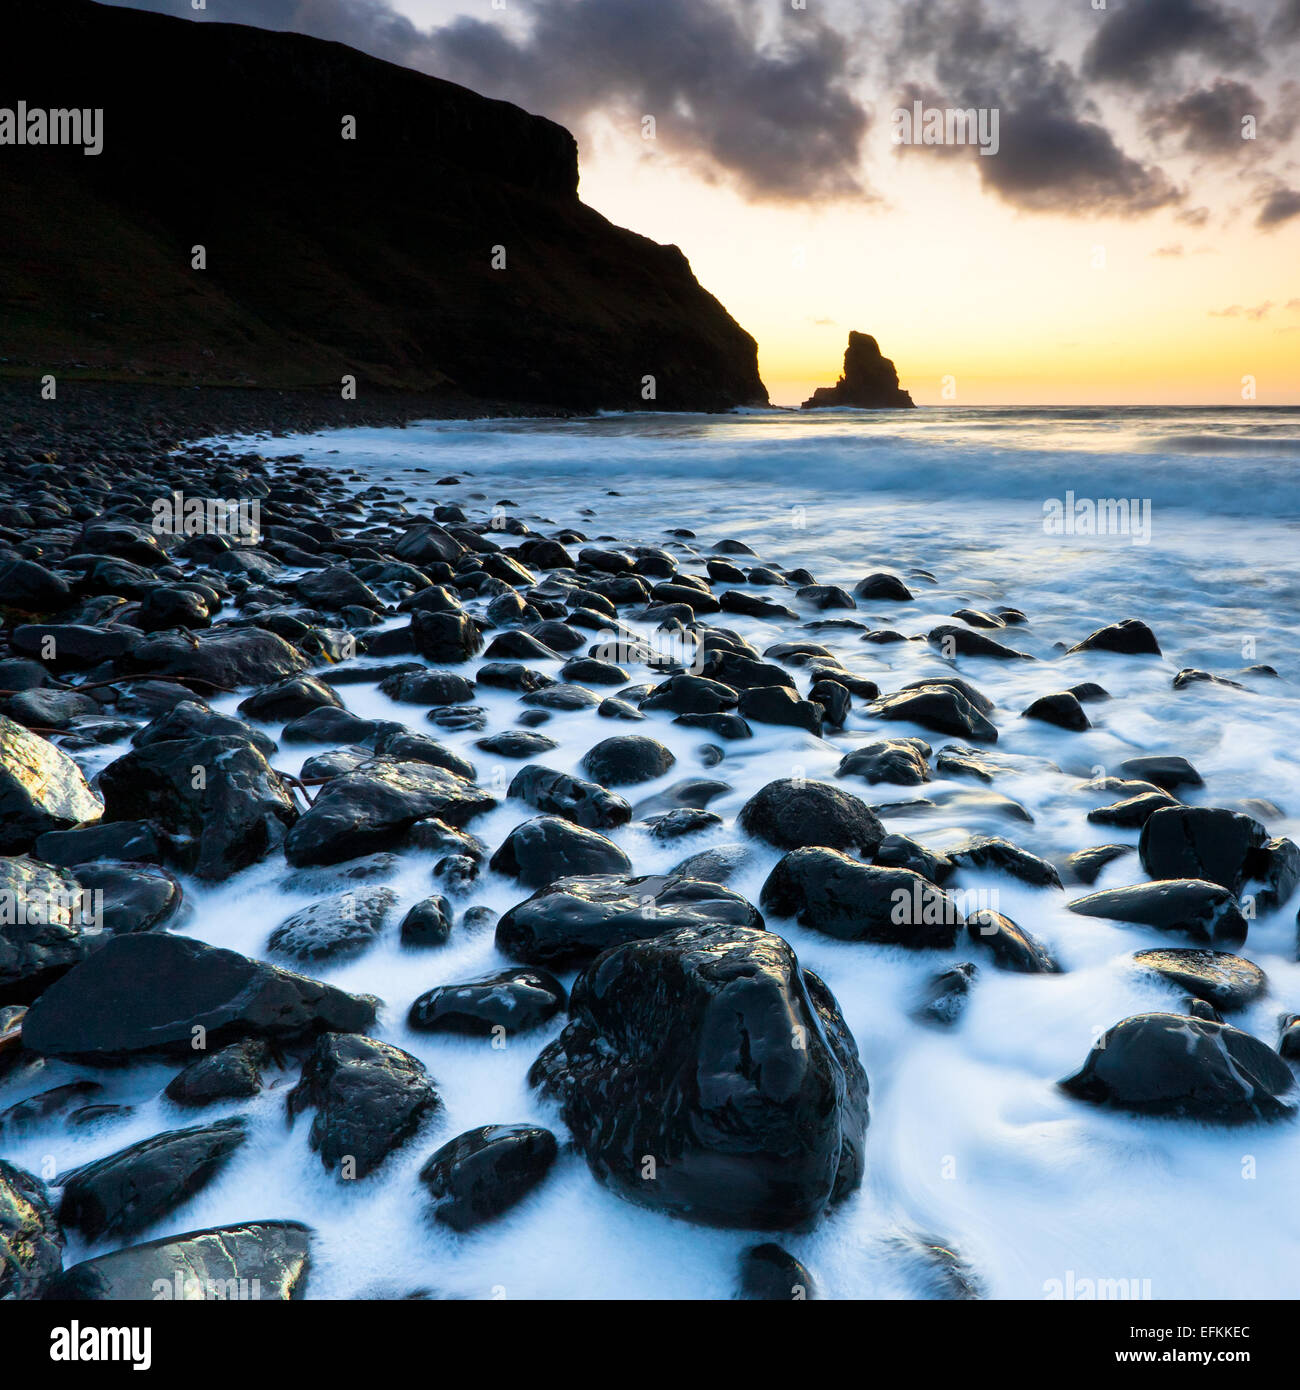 photograph taken at sunset at Talisker Bay on the Isle of Skye Western Isles Scotland Stock Photo